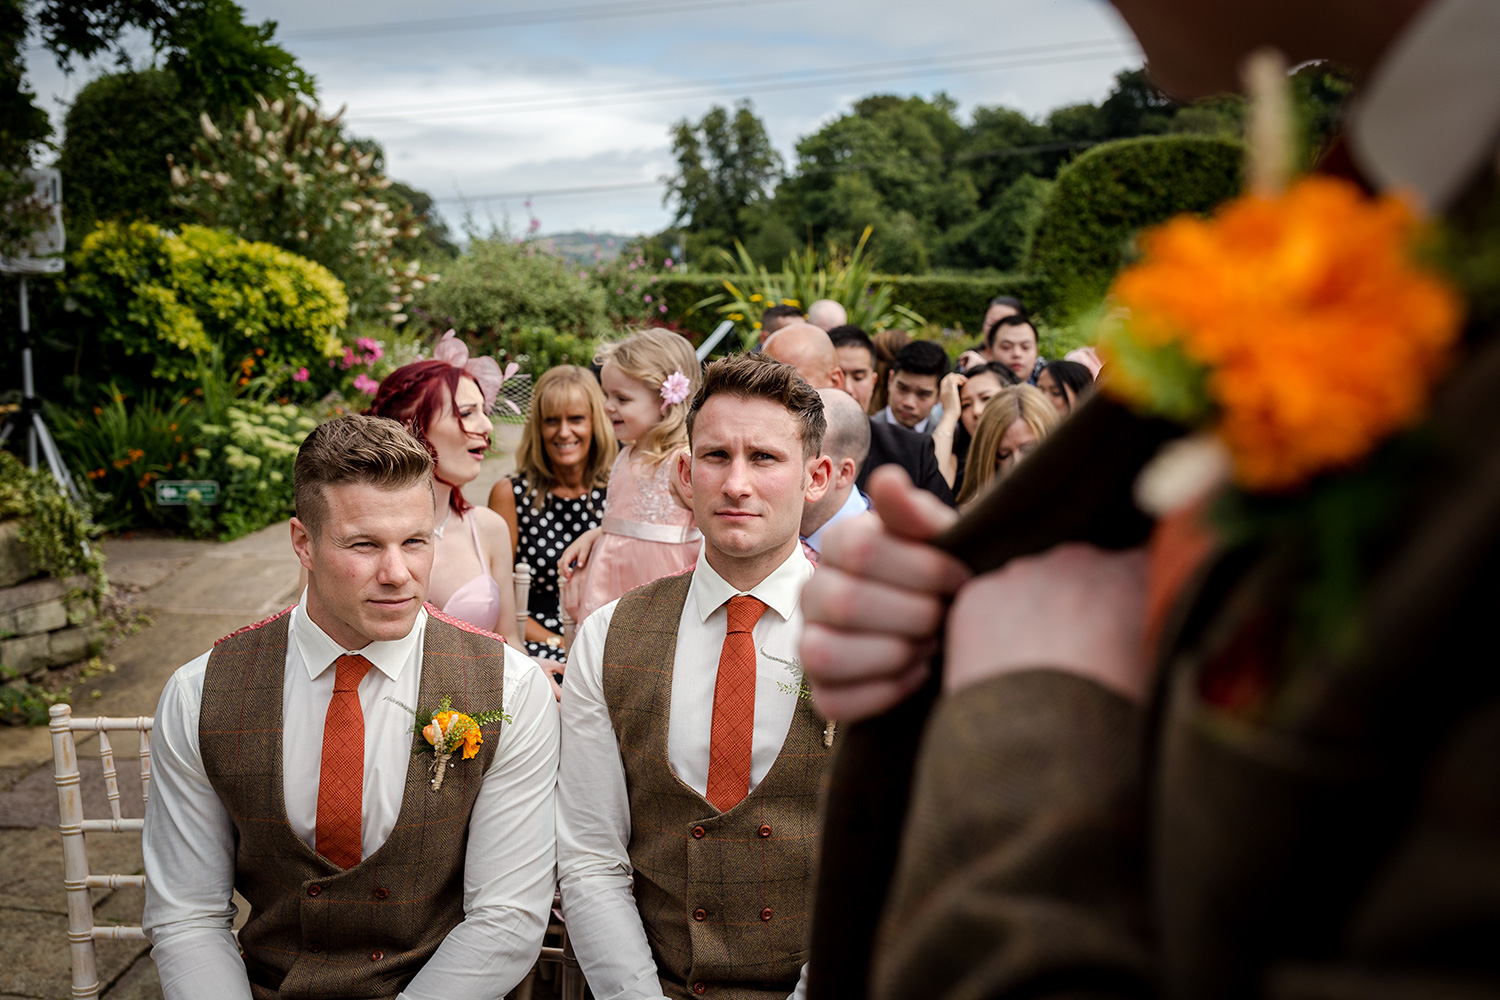 The groom during a Hilltop Country House Wedding